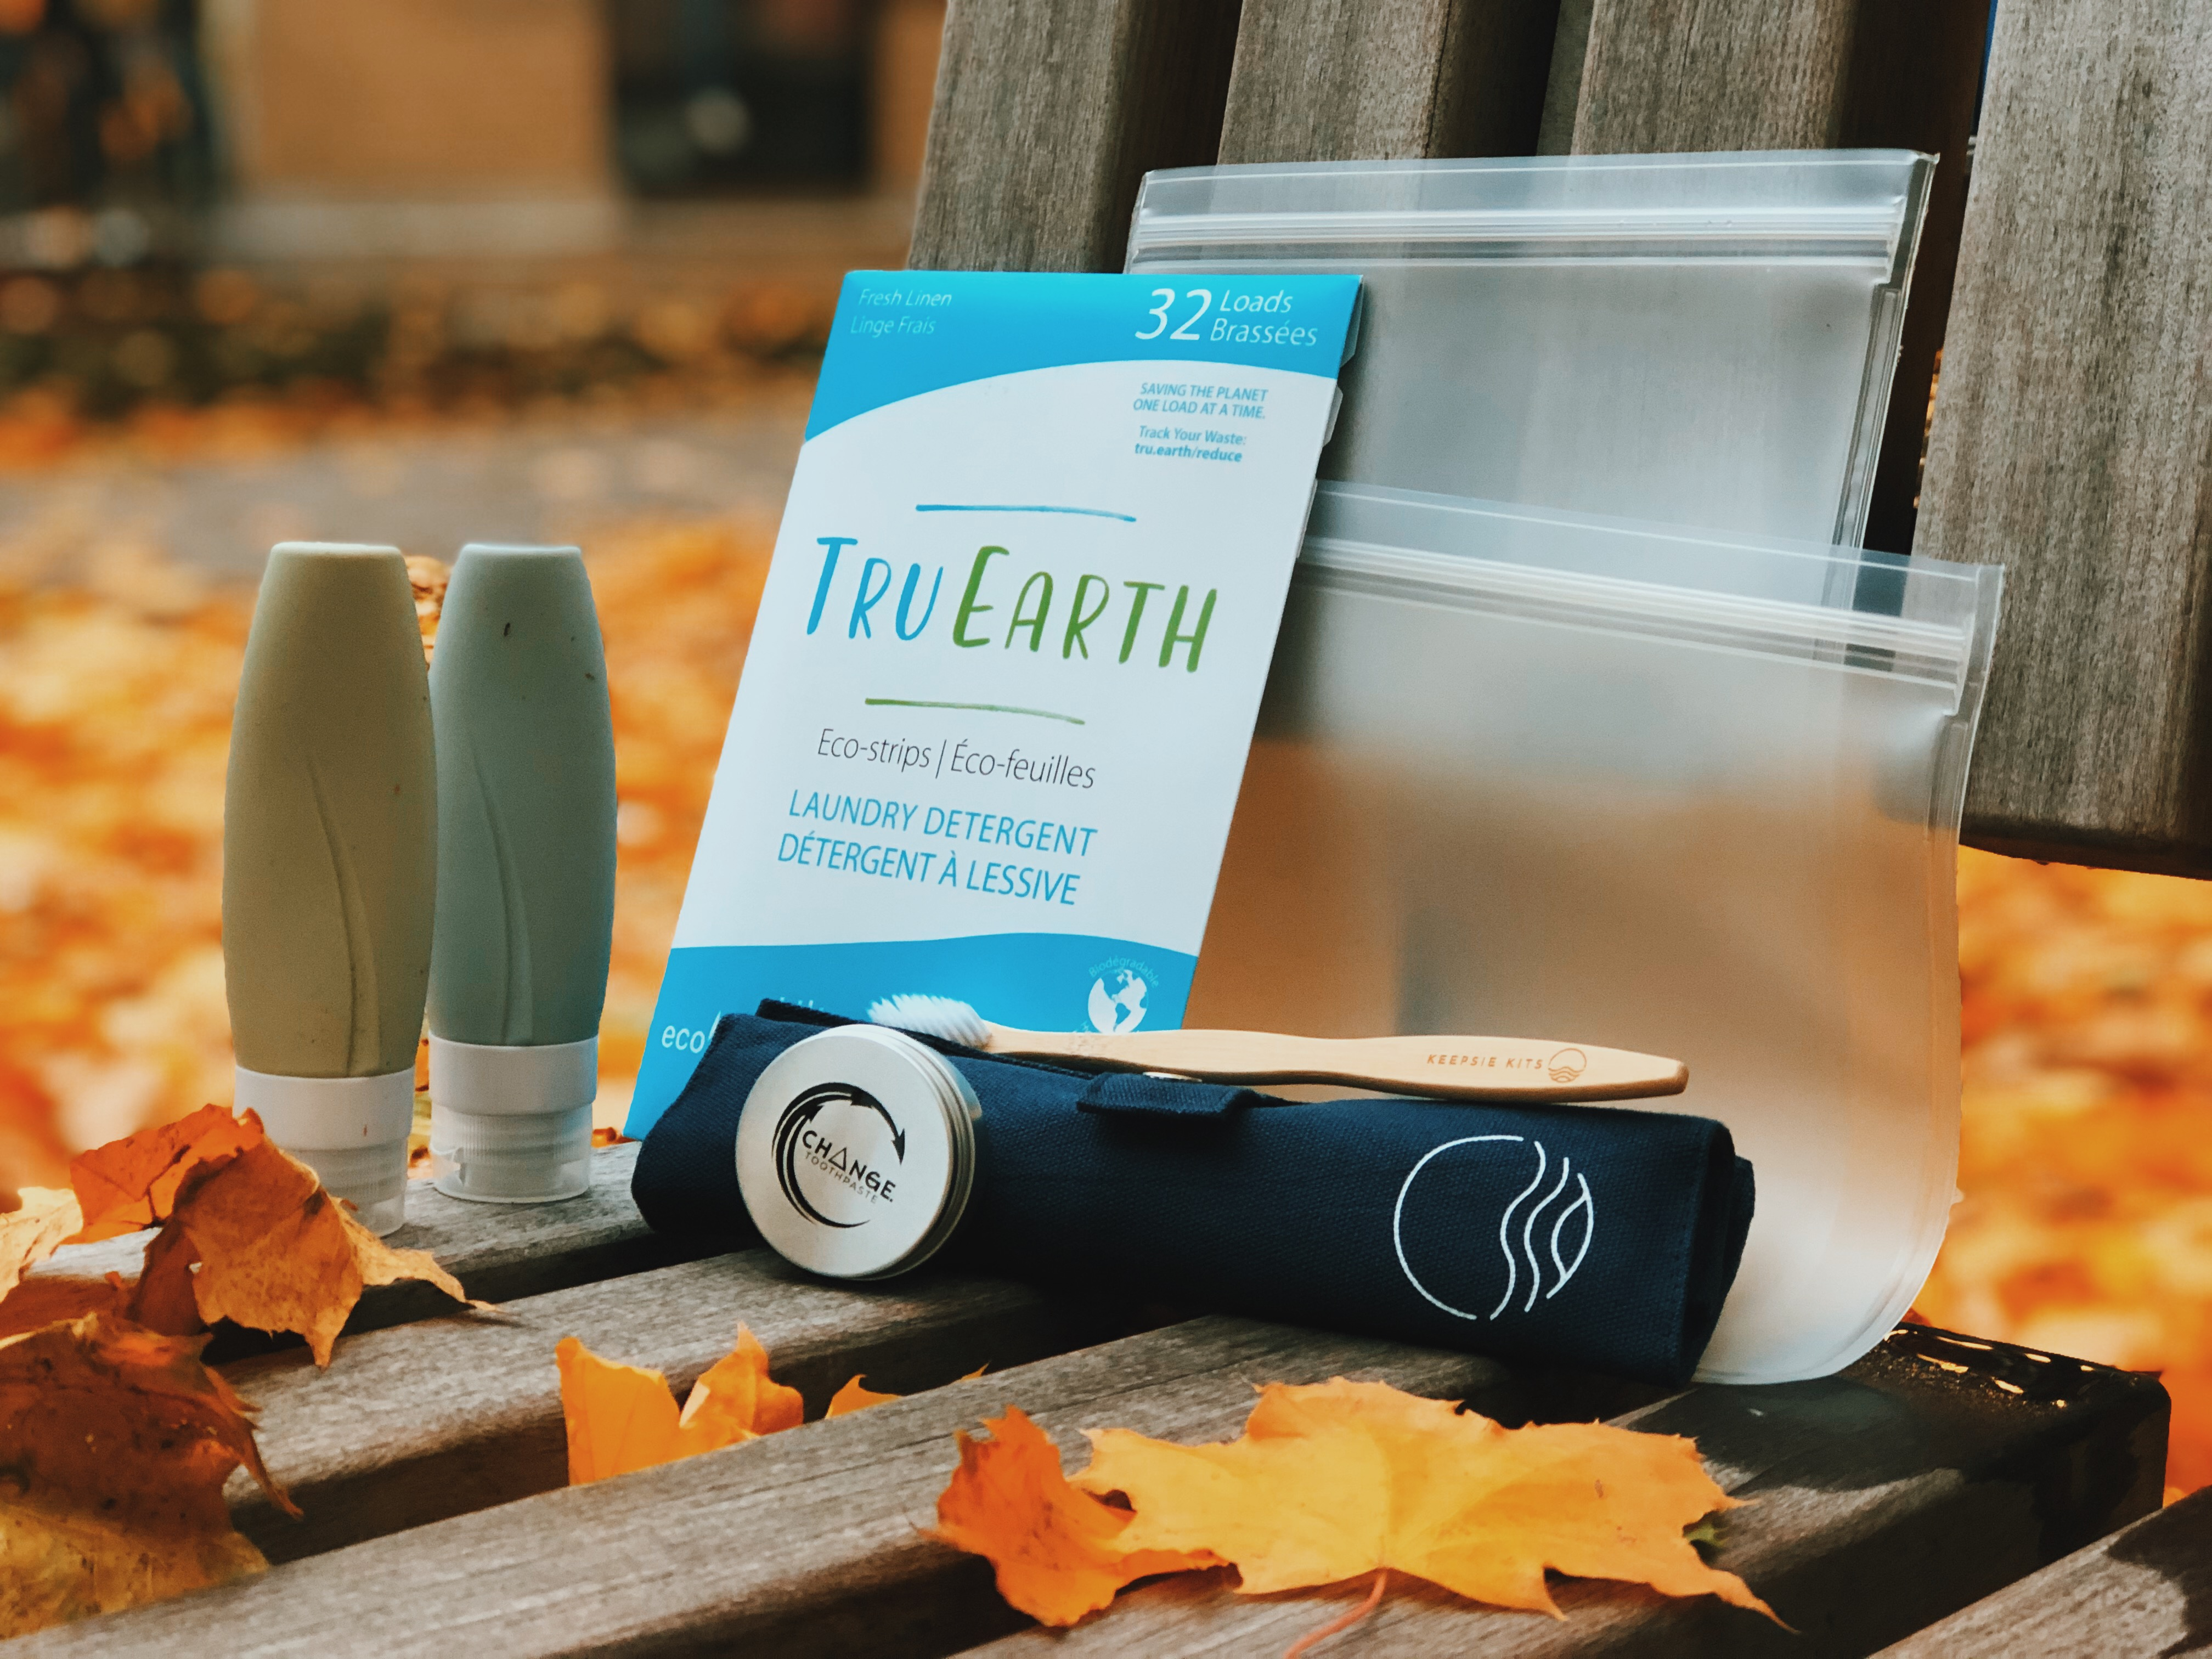 Keepsie Kits - The Essentials - Eco-friendly sustainable travel products for zero-waste travelers